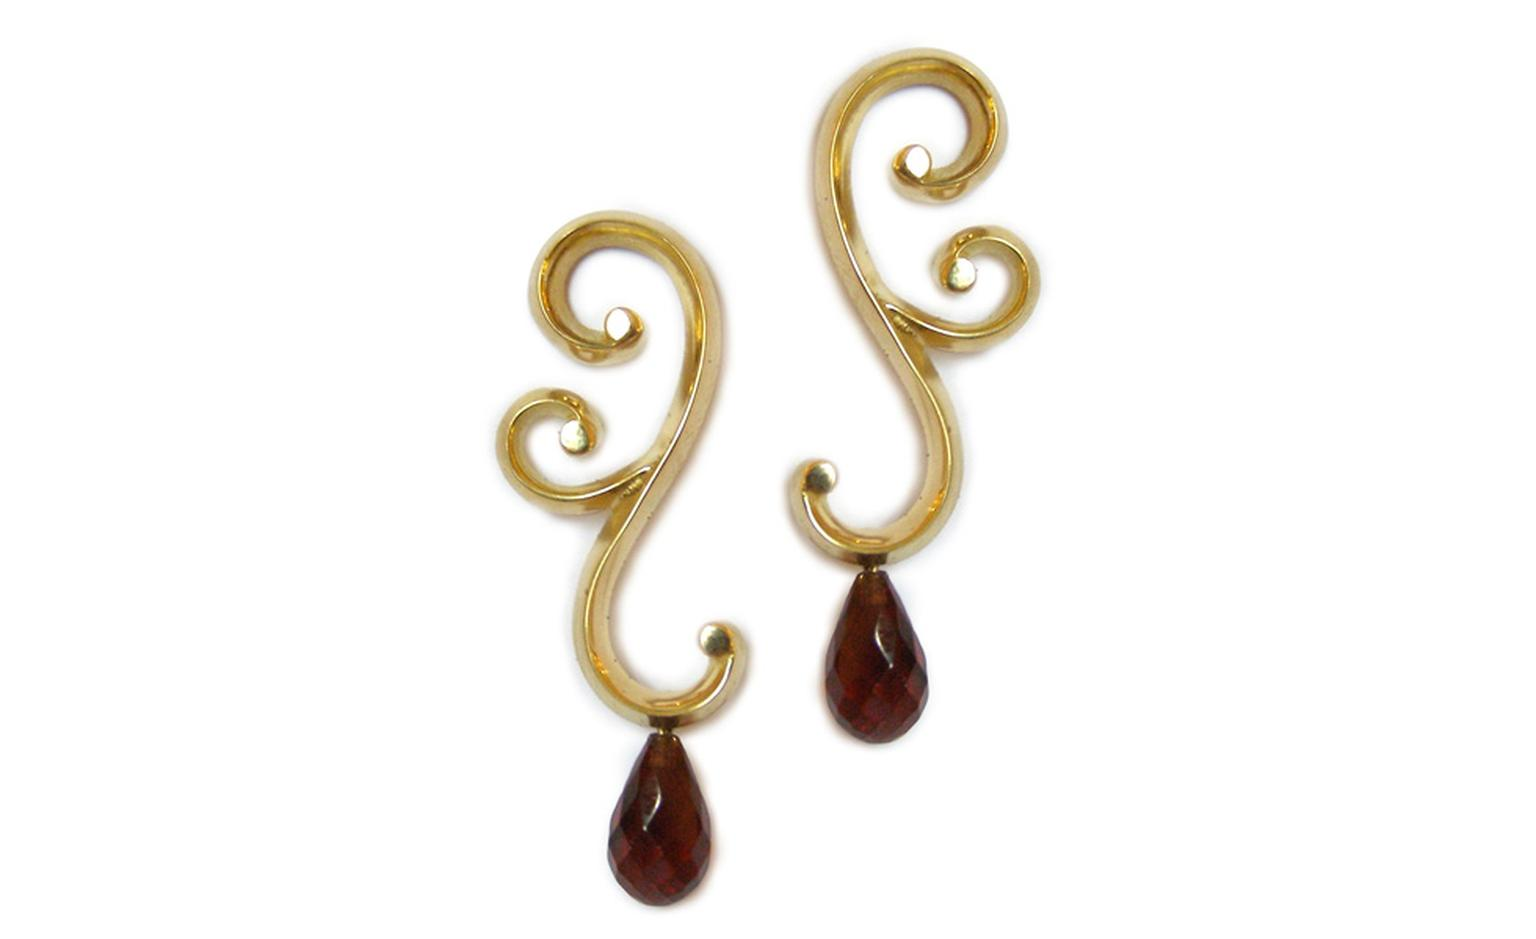 Marianne Anderson Swirl earrings in gold with garnets. £790